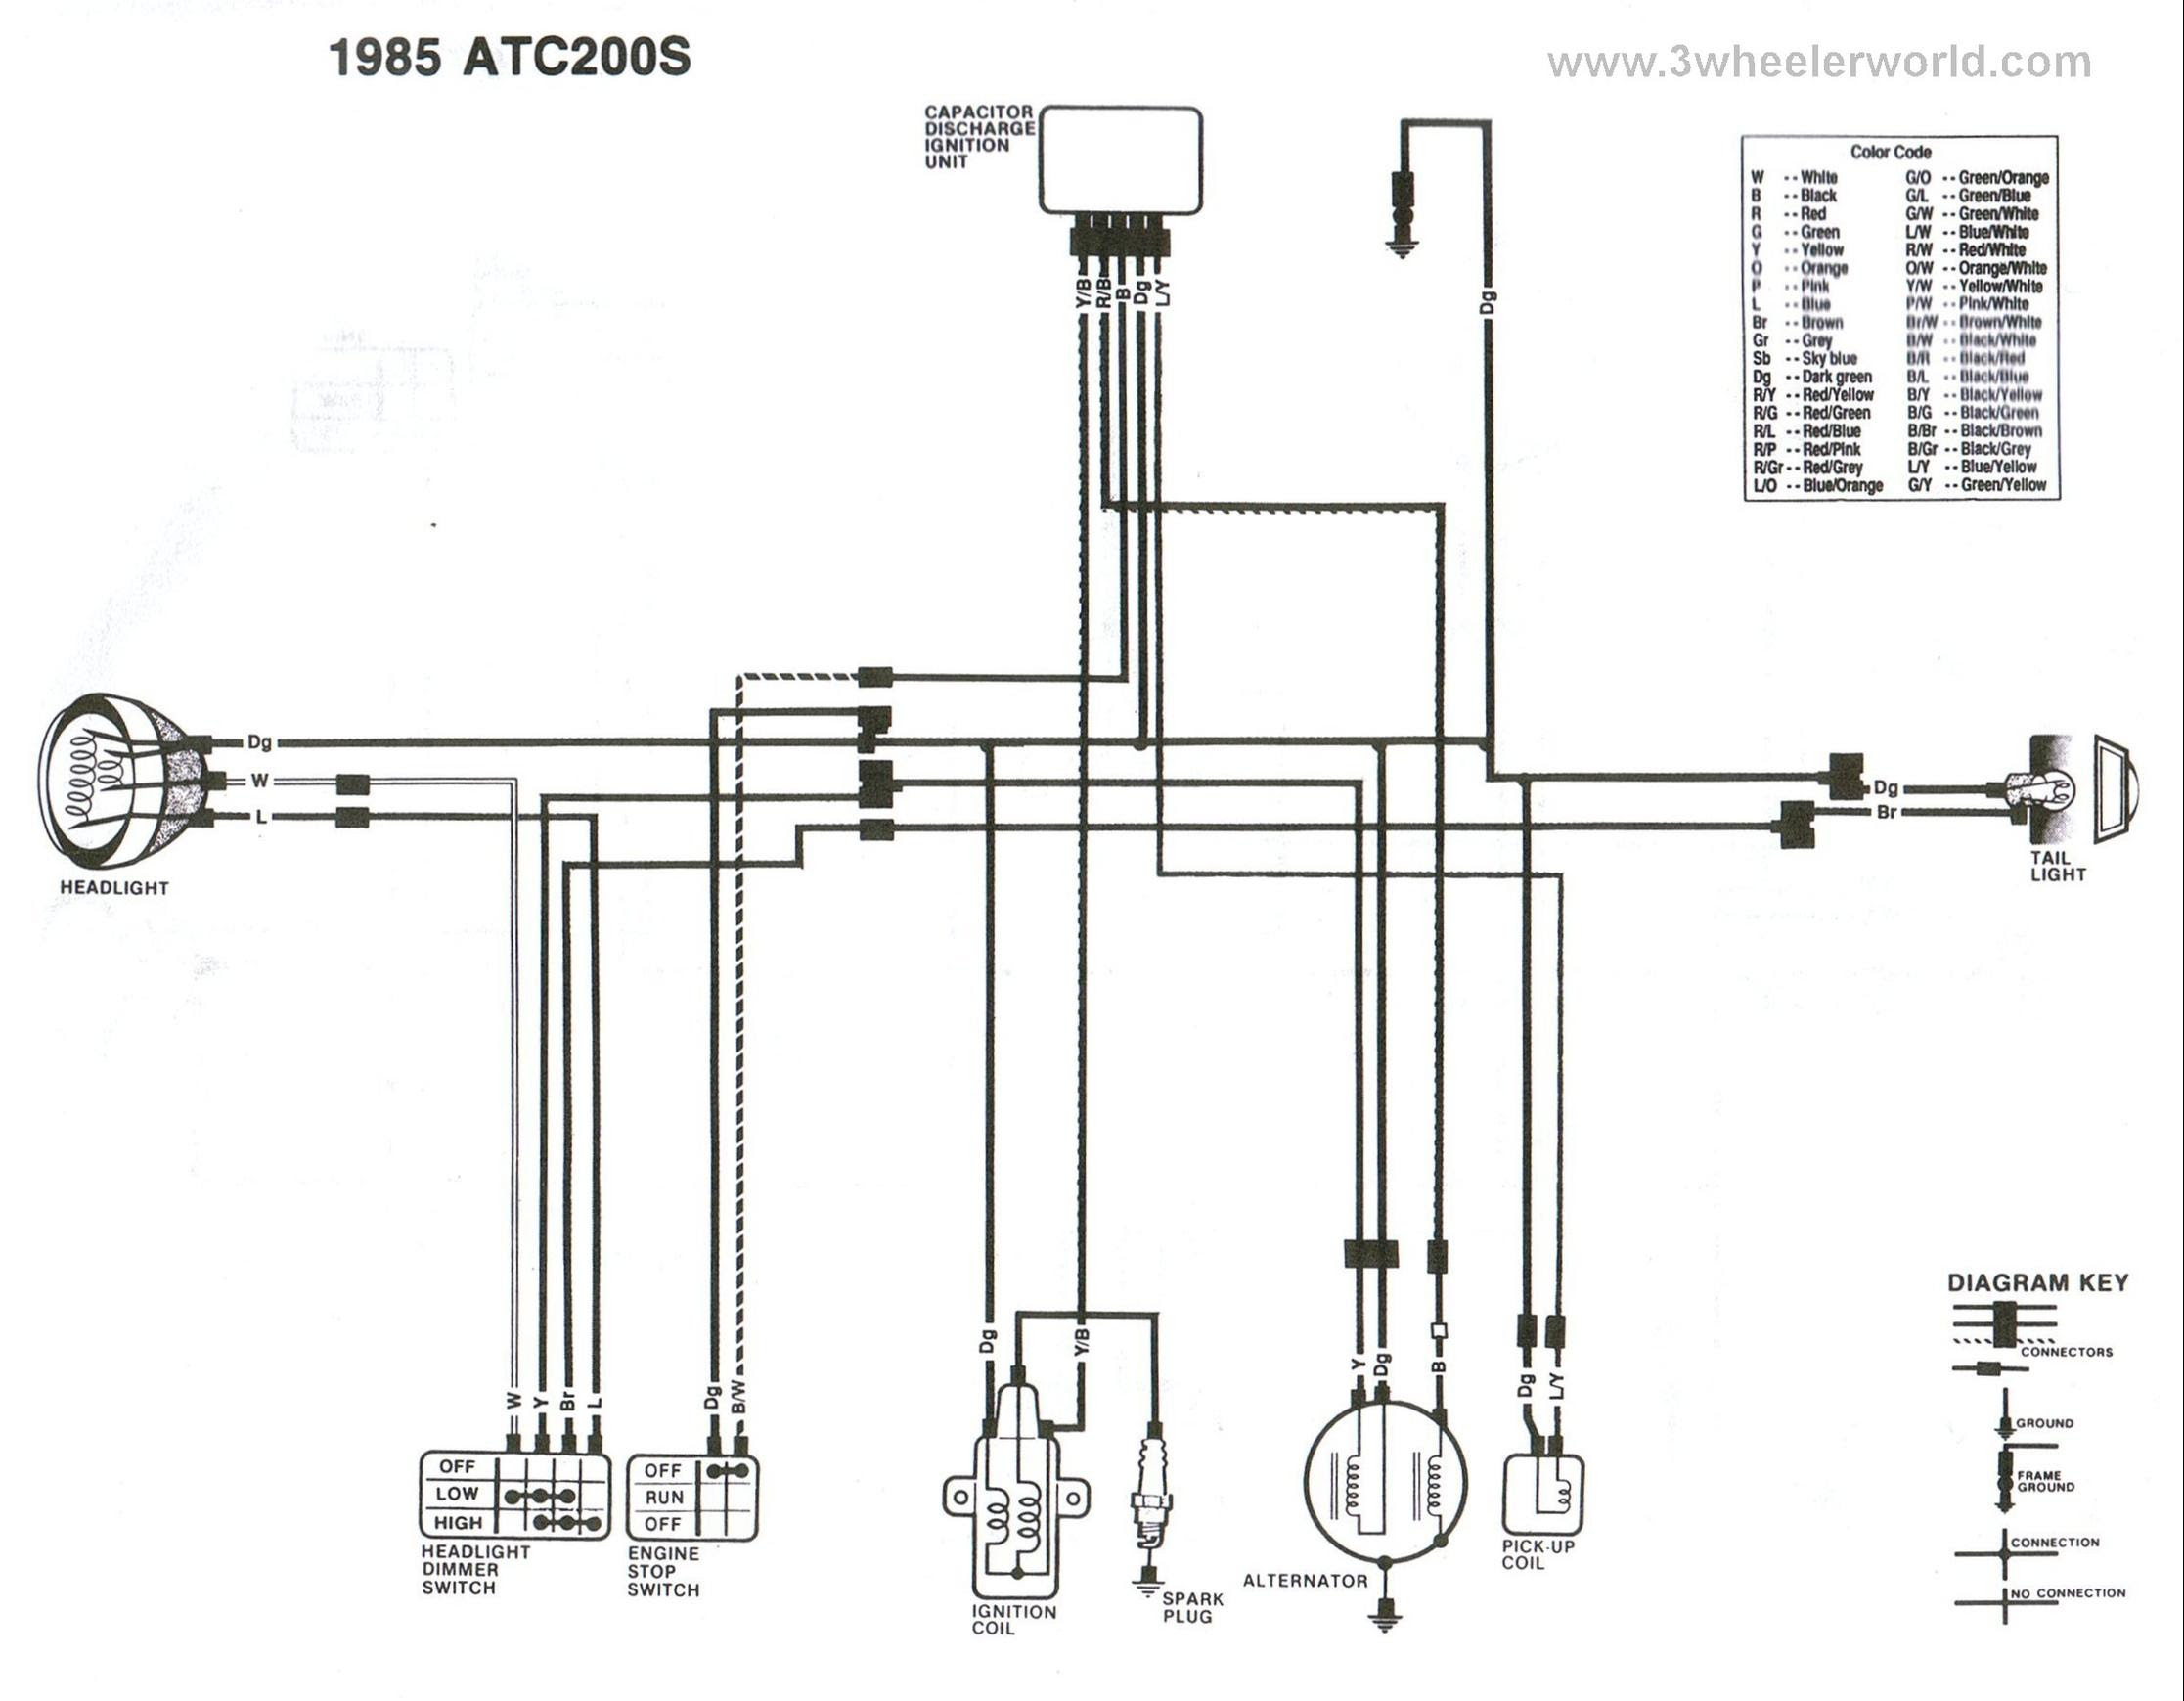 diagram] honda prelude 1985 egr wiring diagram full version hd quality wiring  diagram - bgwiring.recycledstones.it  bgwiring.recycledstones.it